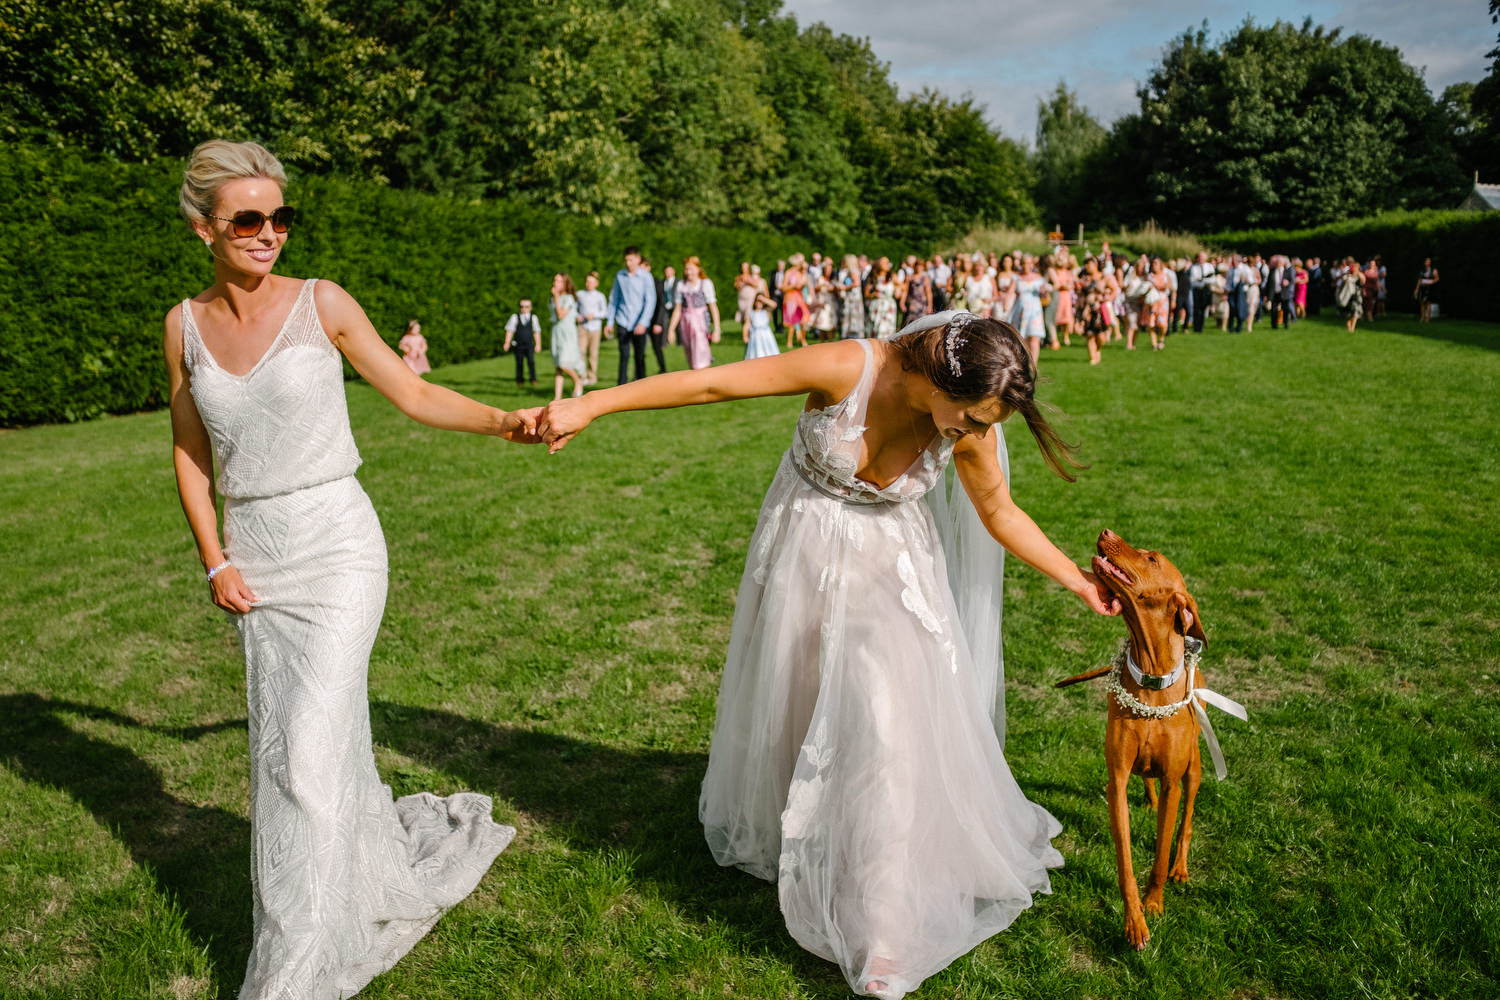 dmp0698_guests_indian_samesex_ballintubbert_house_twobrides_crowd_fun_dogs_tent_wedding